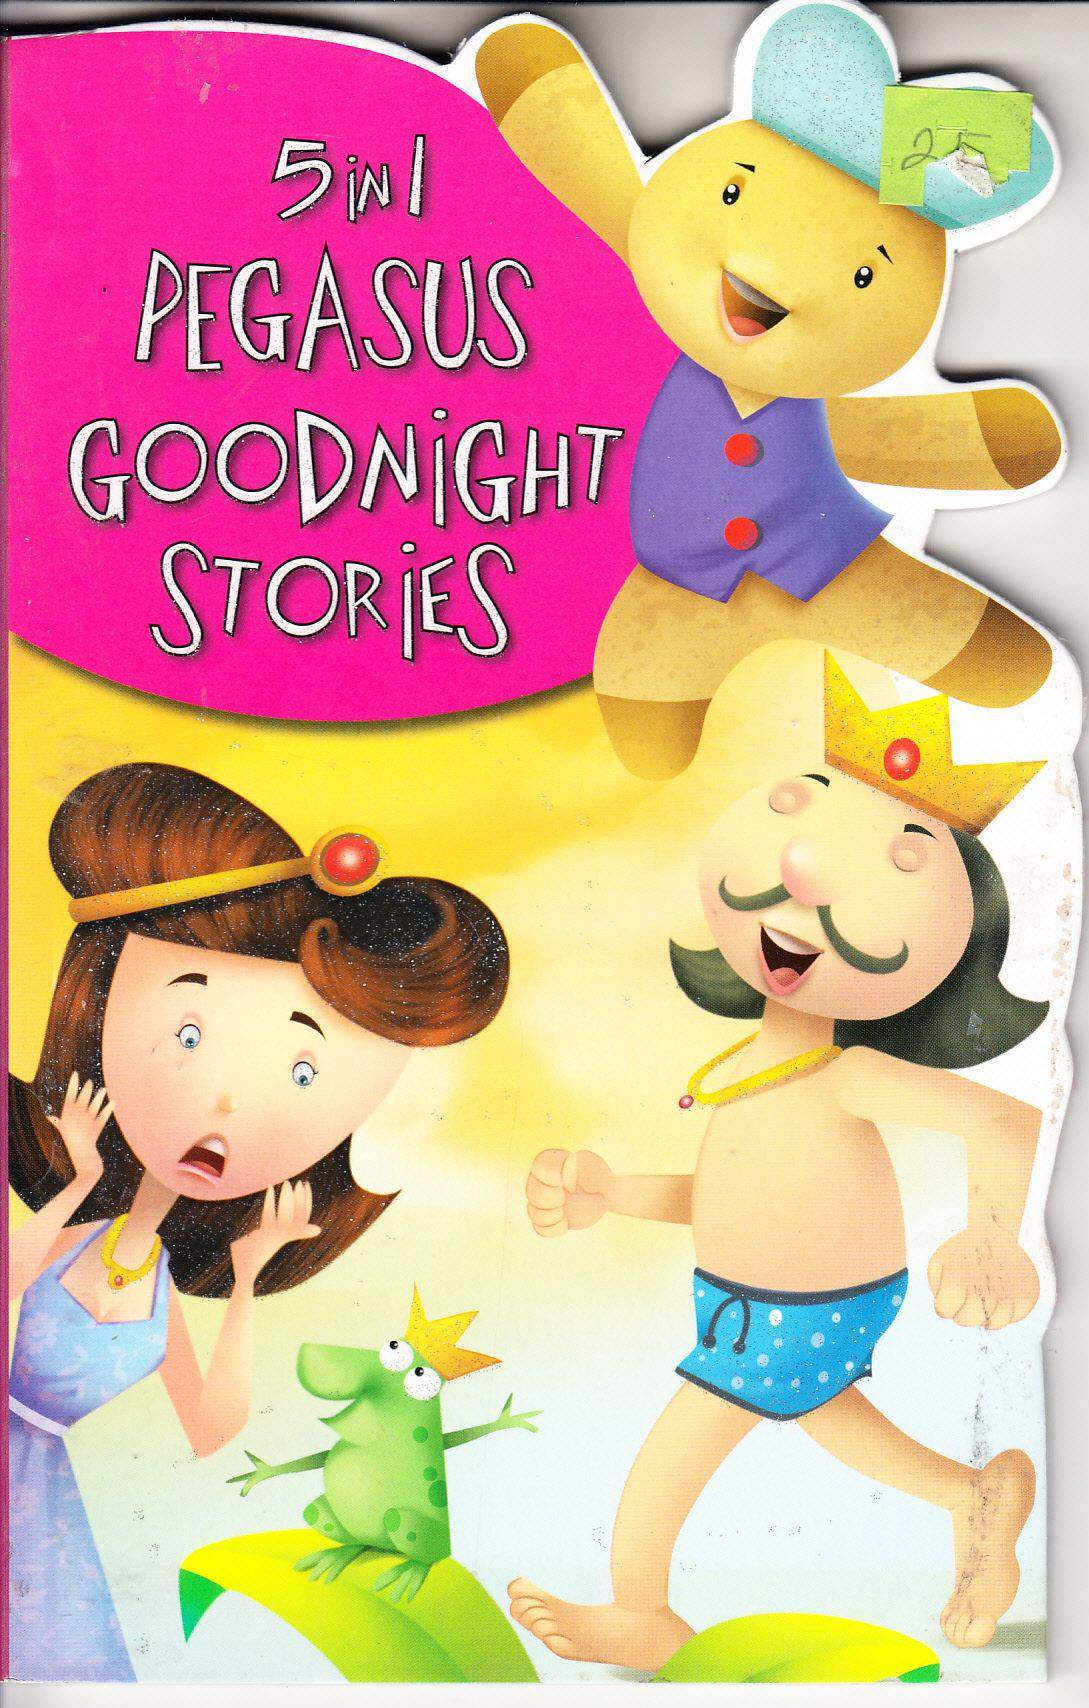 5 IN 1 GOODNIGHT STORIES